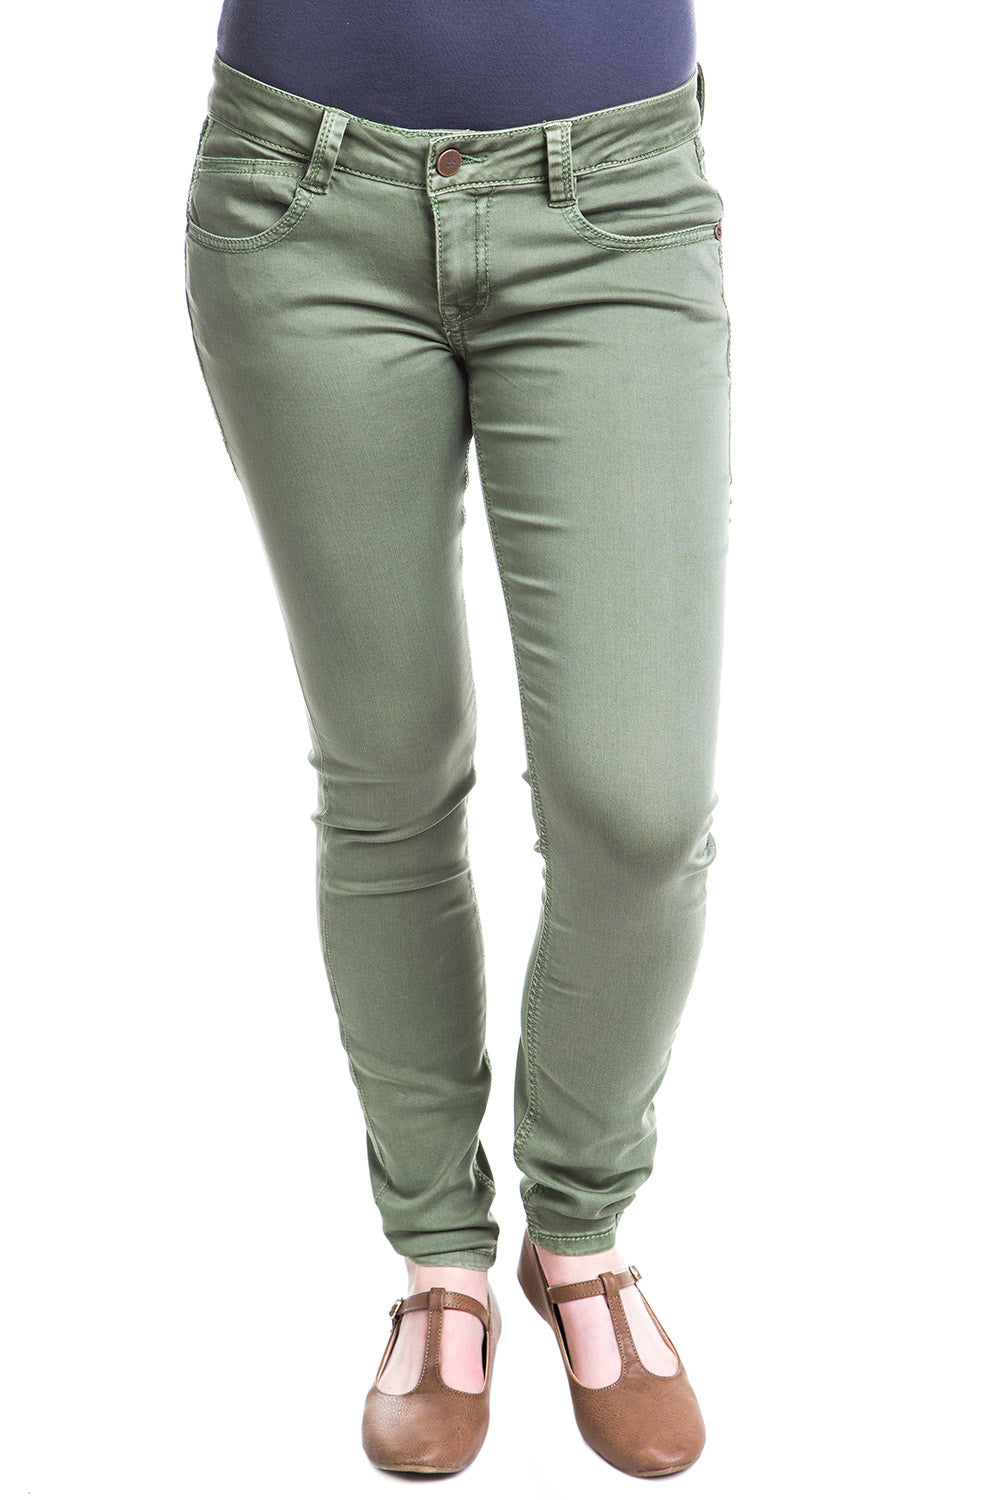 Type 2 Favorite Pants In Jade